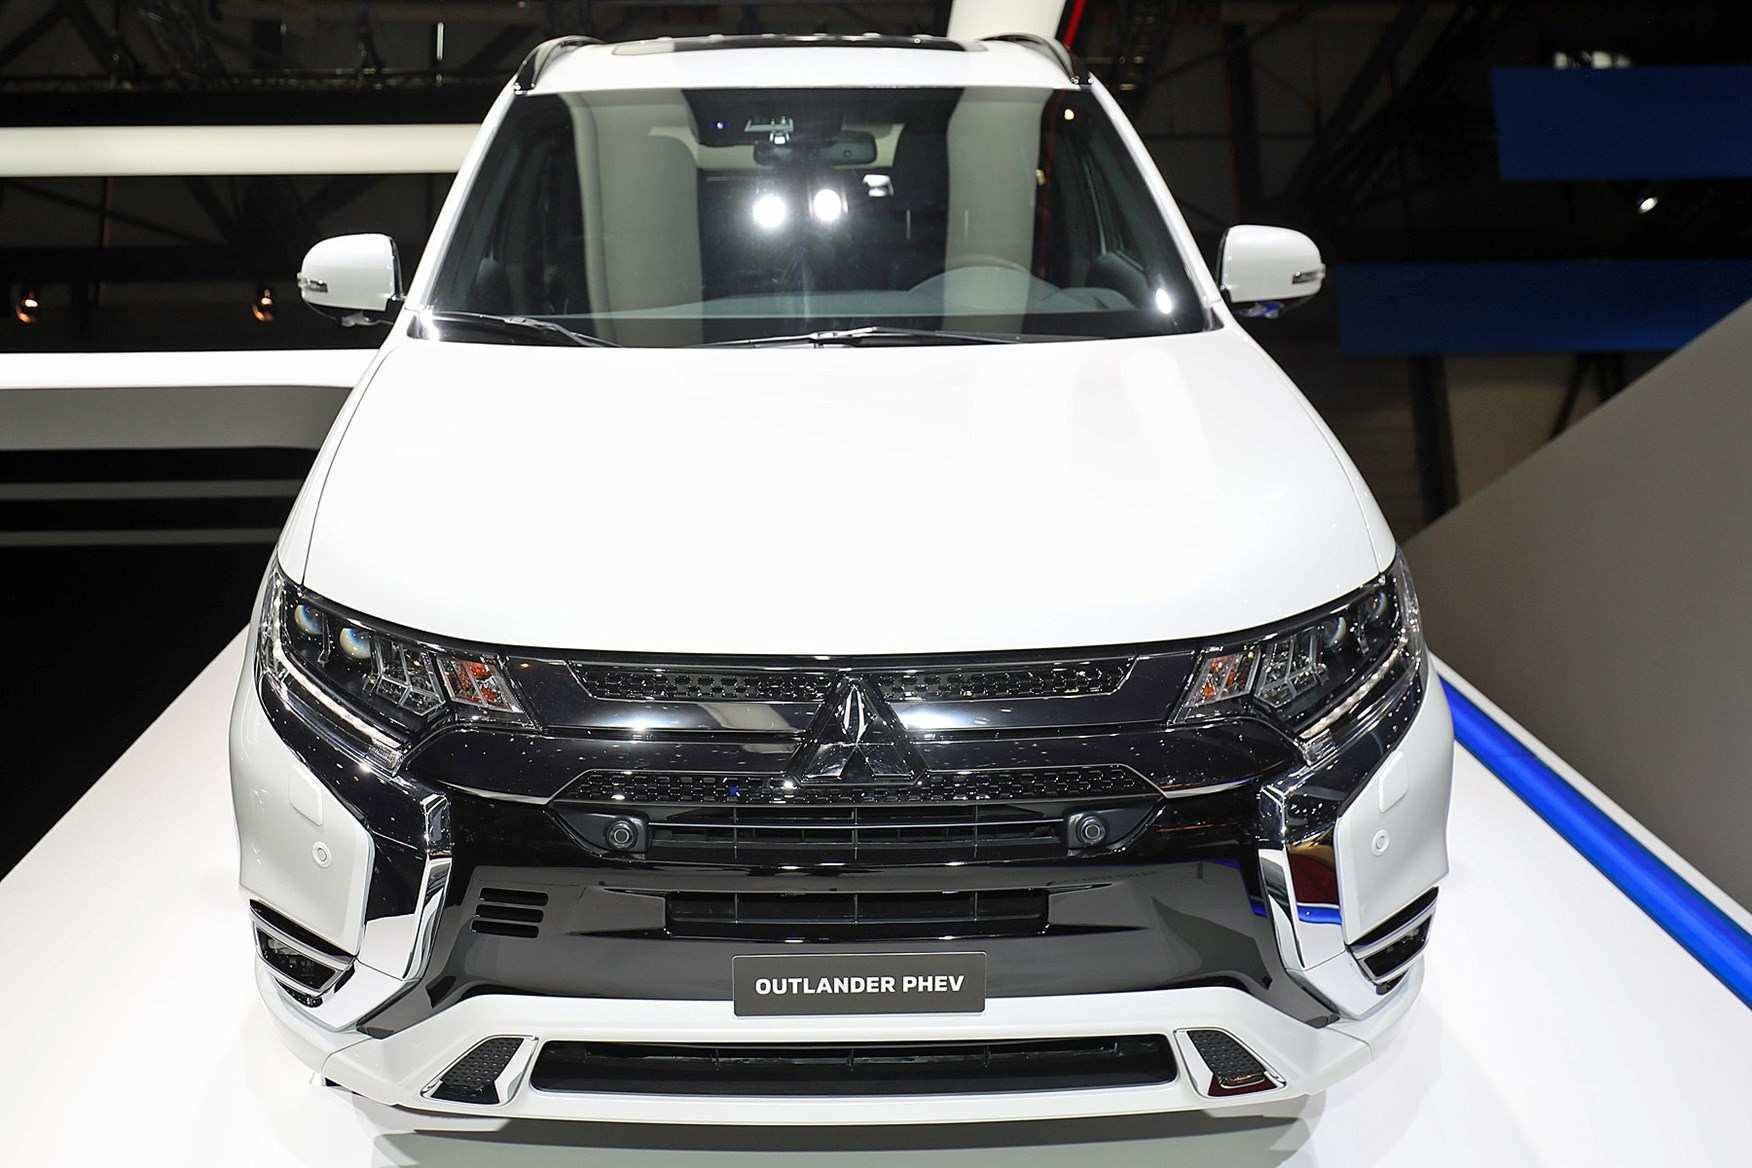 75 Concept of 2019 Mitsubishi Outlander Phev Review New Concept by 2019 Mitsubishi Outlander Phev Review